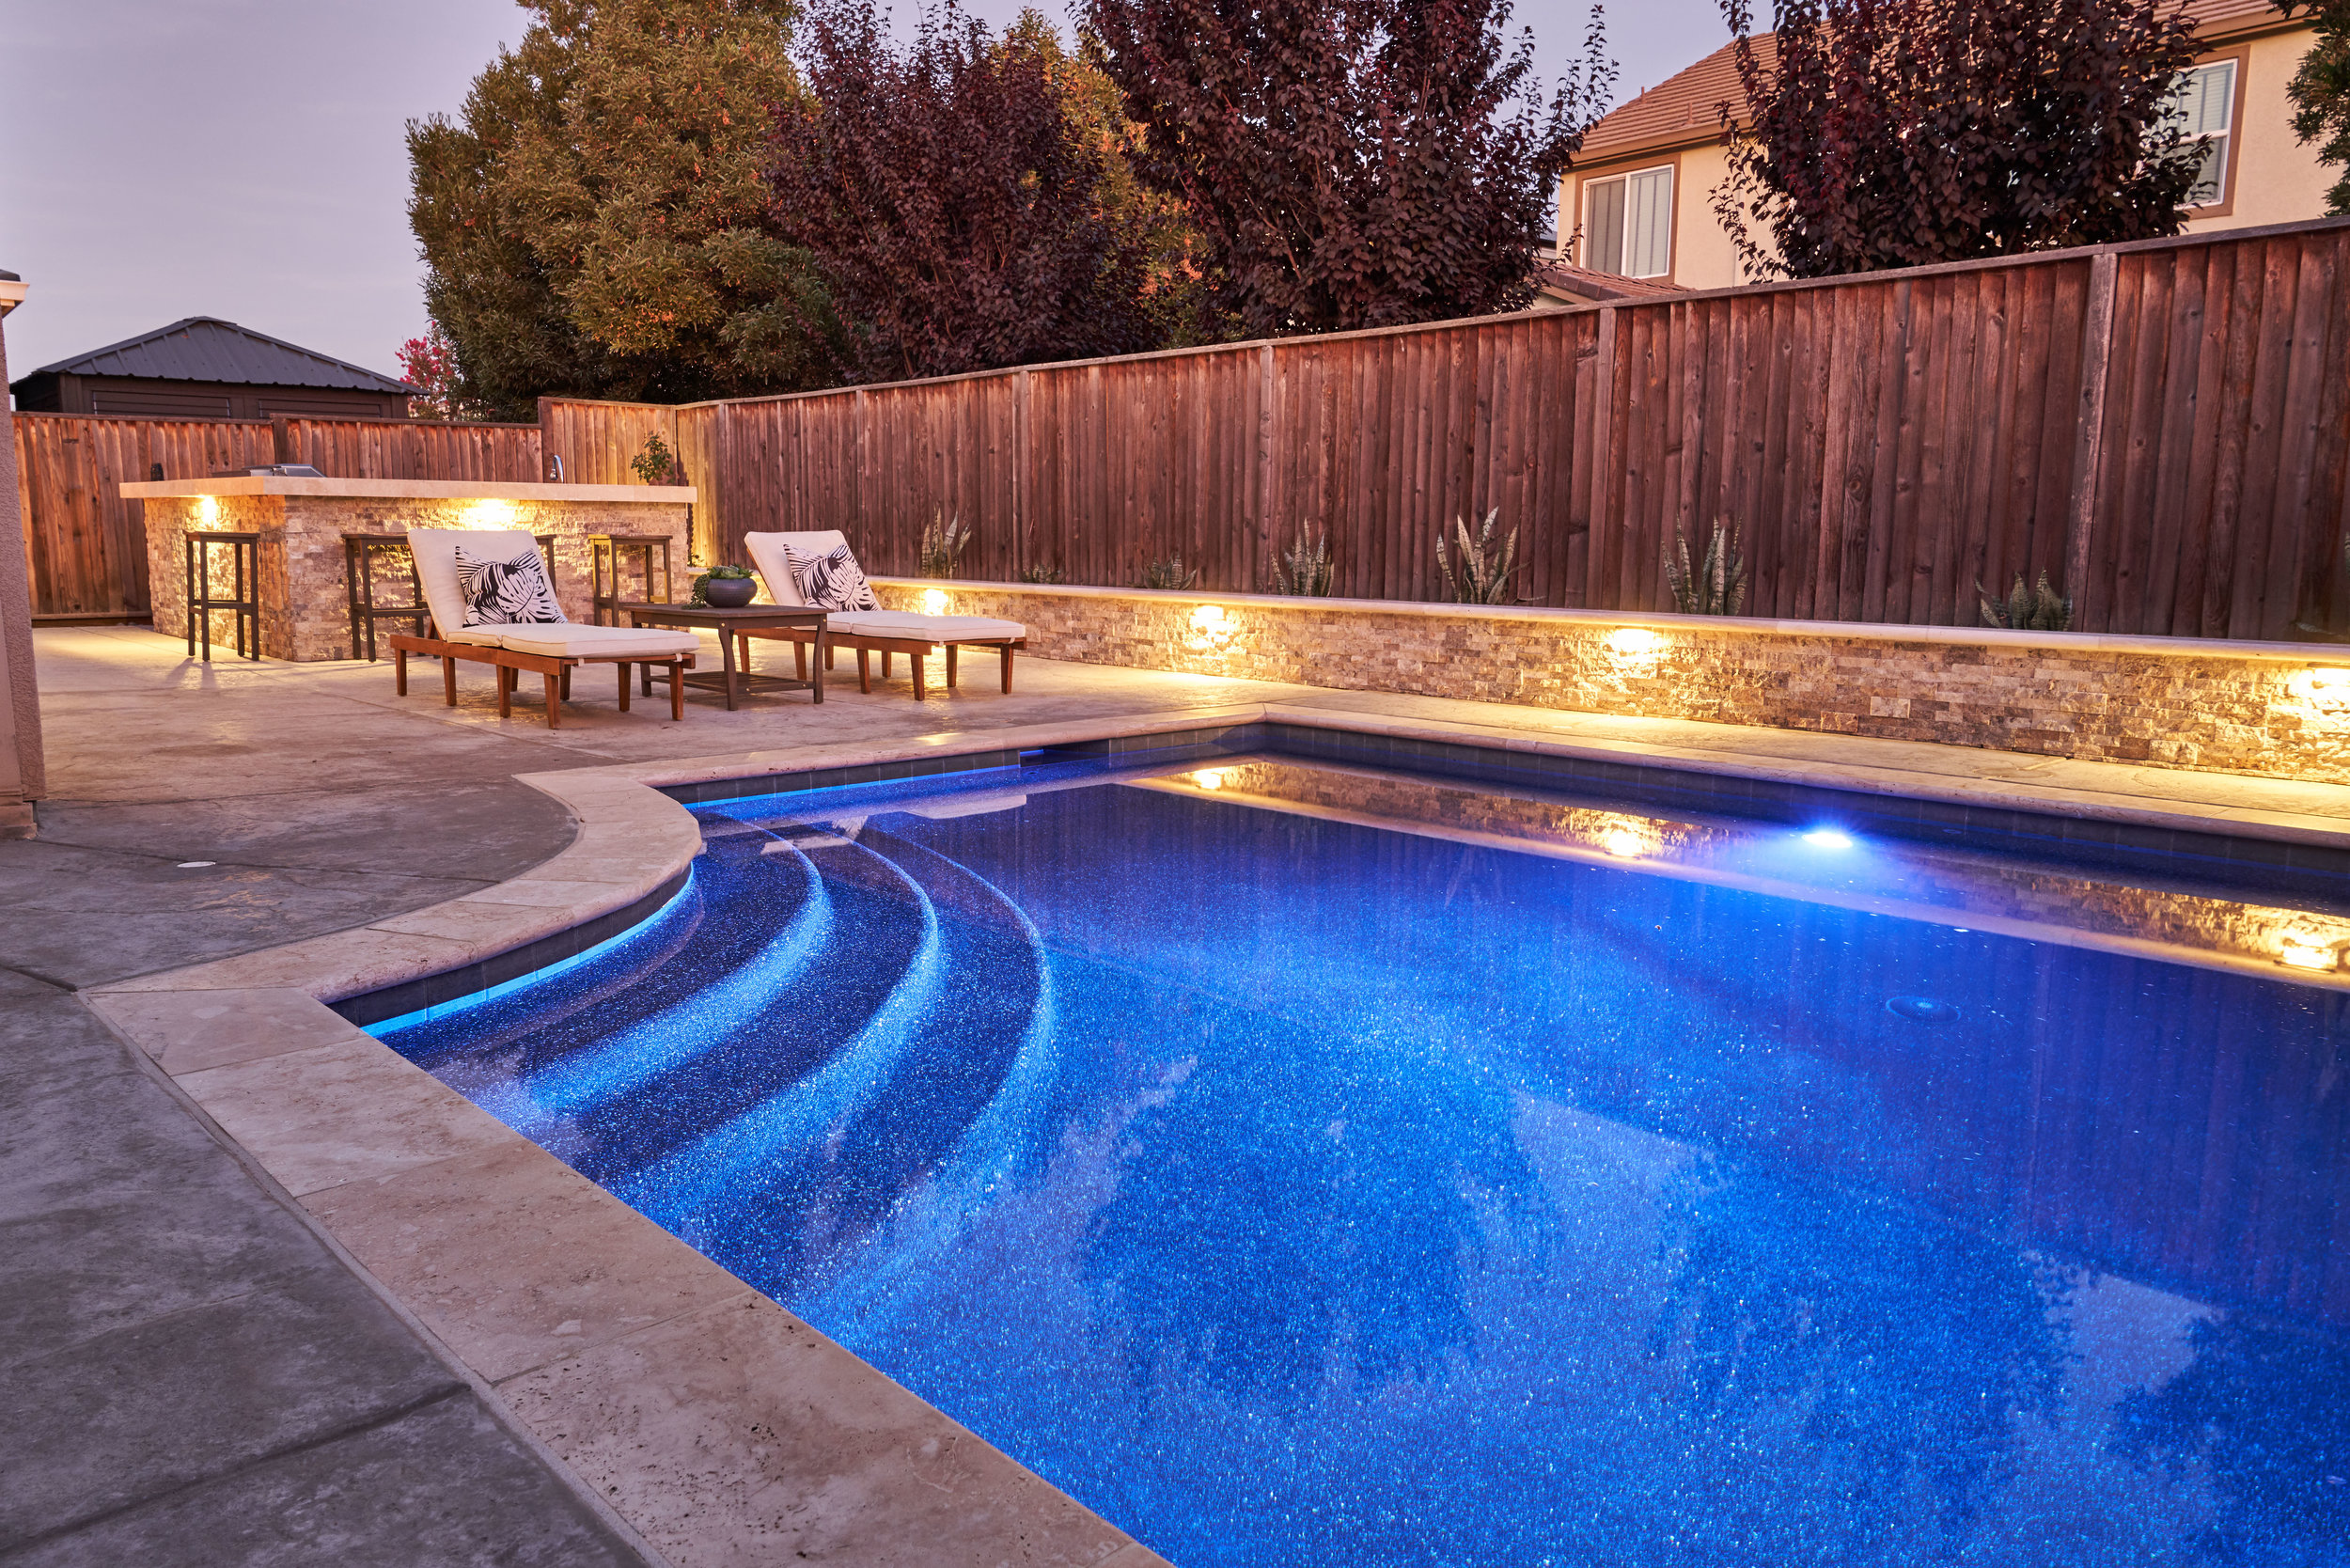 pacheco_landscape_and_pool_DSC9618_illume_multimedia_brentwood_photographer.jpg